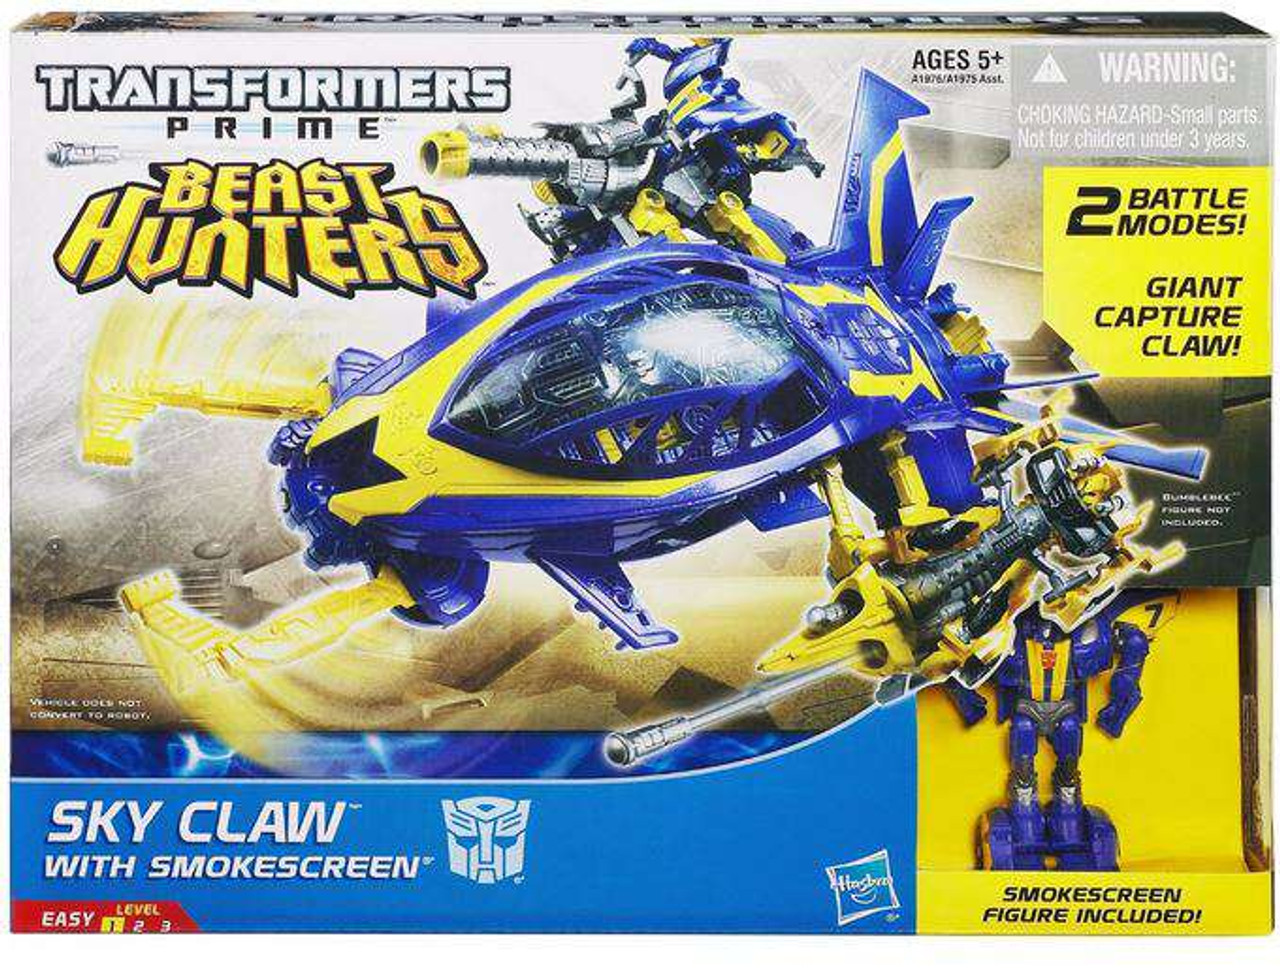 Transformers Prime Beast Hunters Sky Claw with Smokescreen Action Figure Set